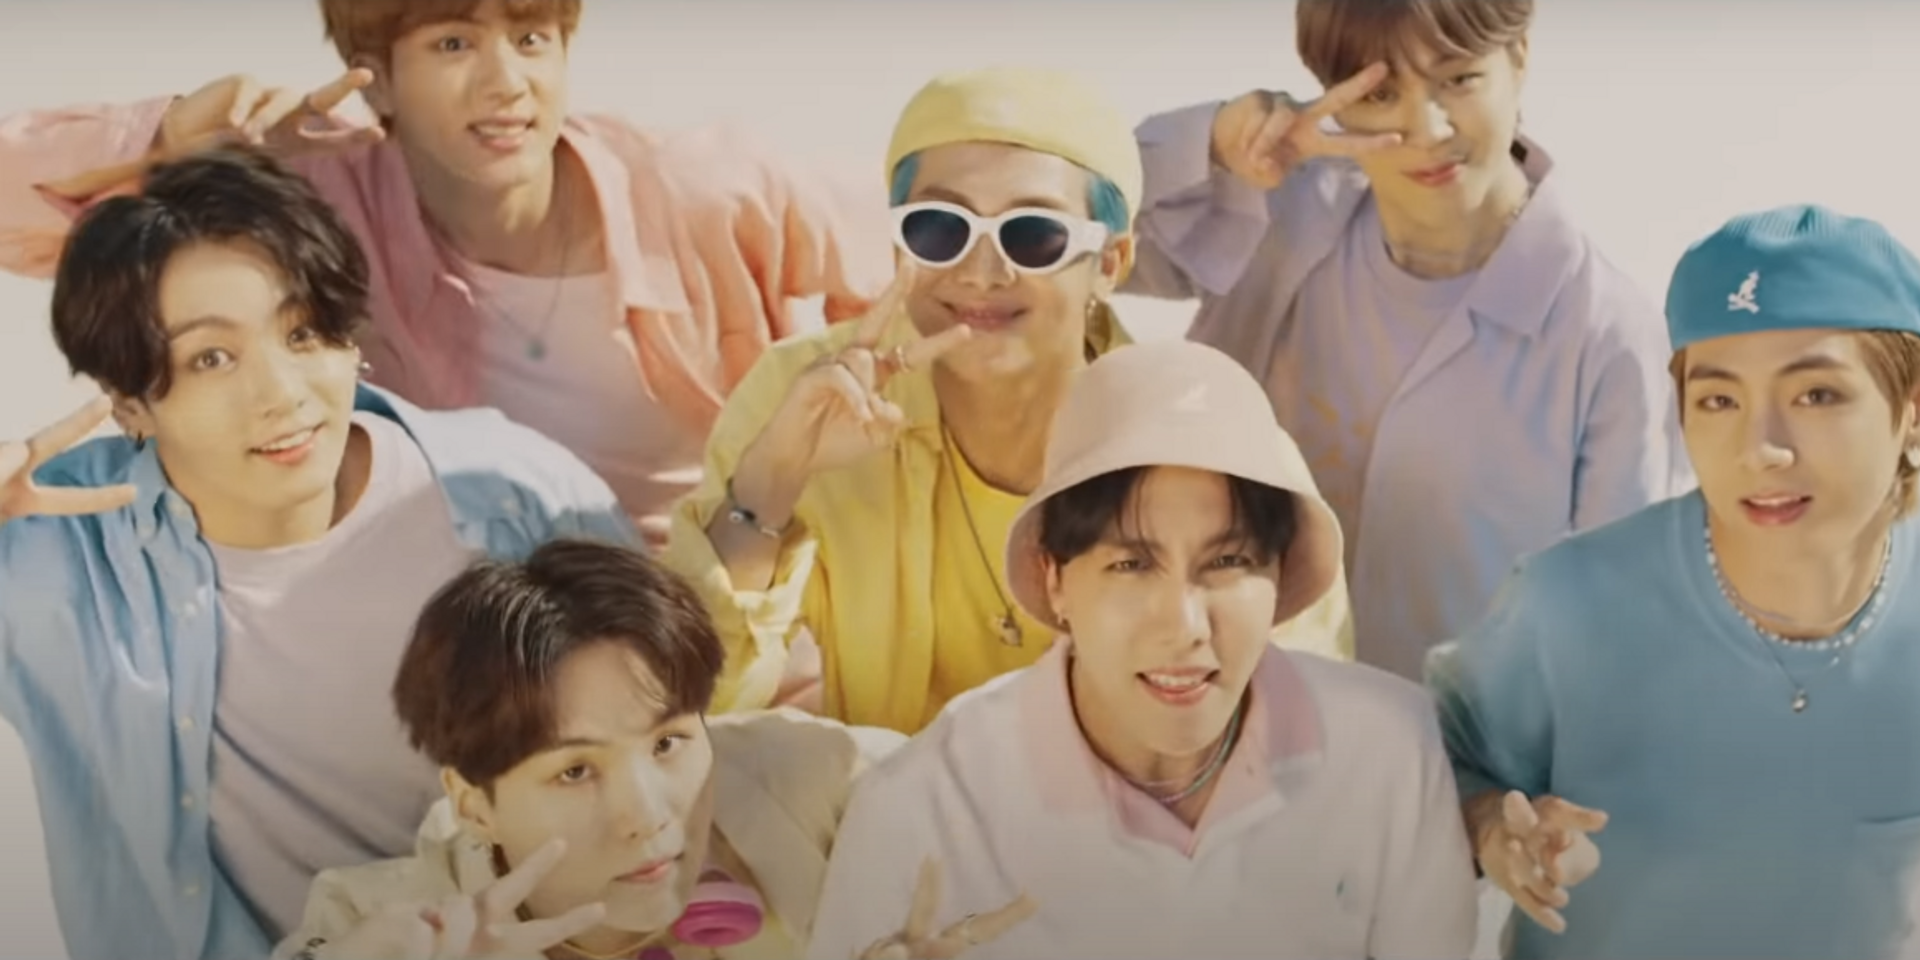 BTS' music video for new single 'Dynamite' breaks 10 million views in just 20 minutes - watch